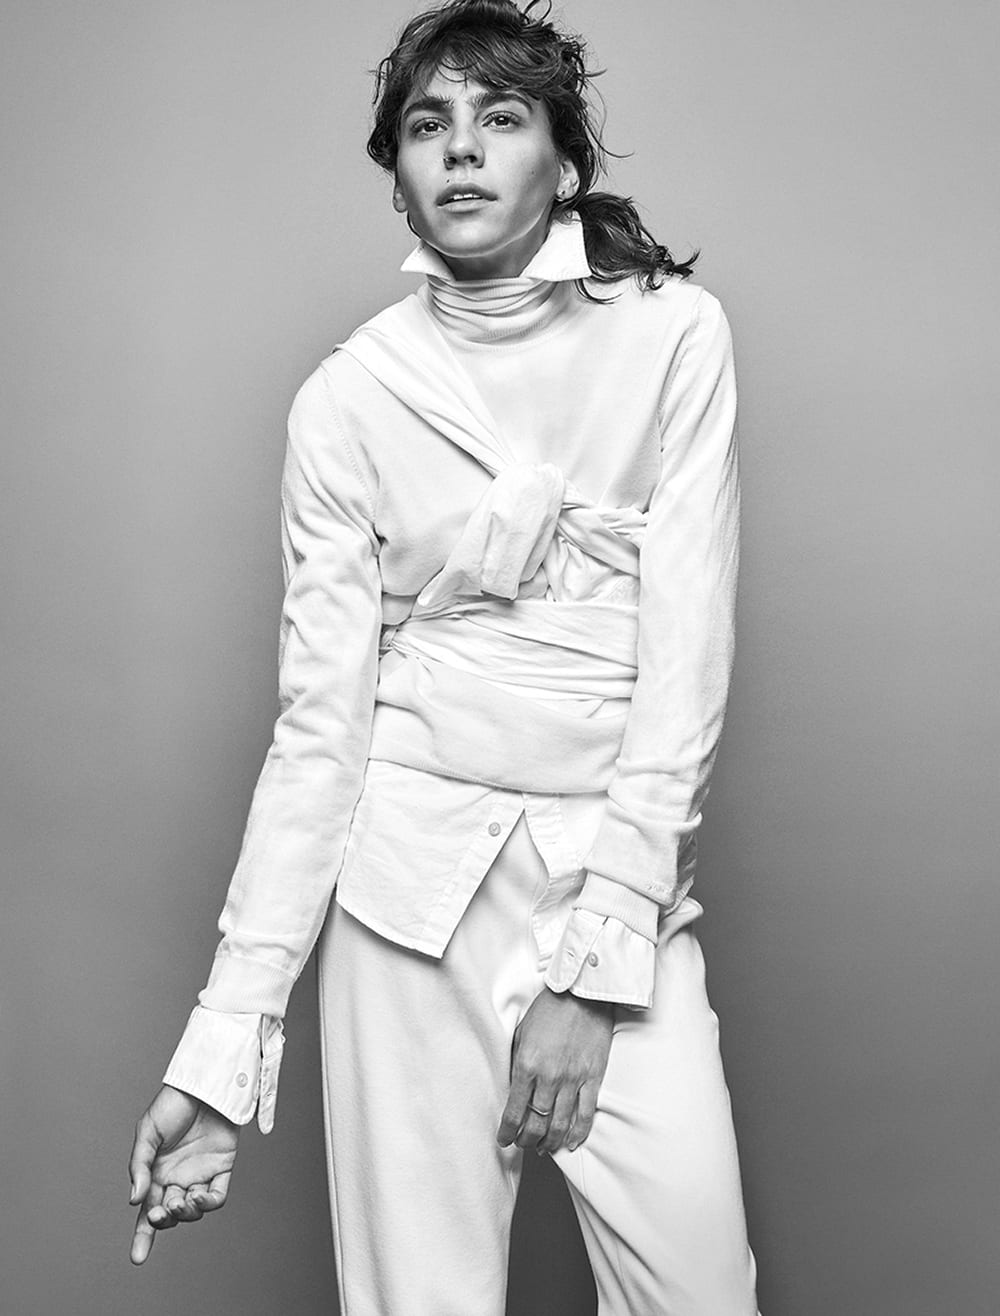 Style&Minimalism | Editorials | Gant White Shirt Styling By Columbine Smille